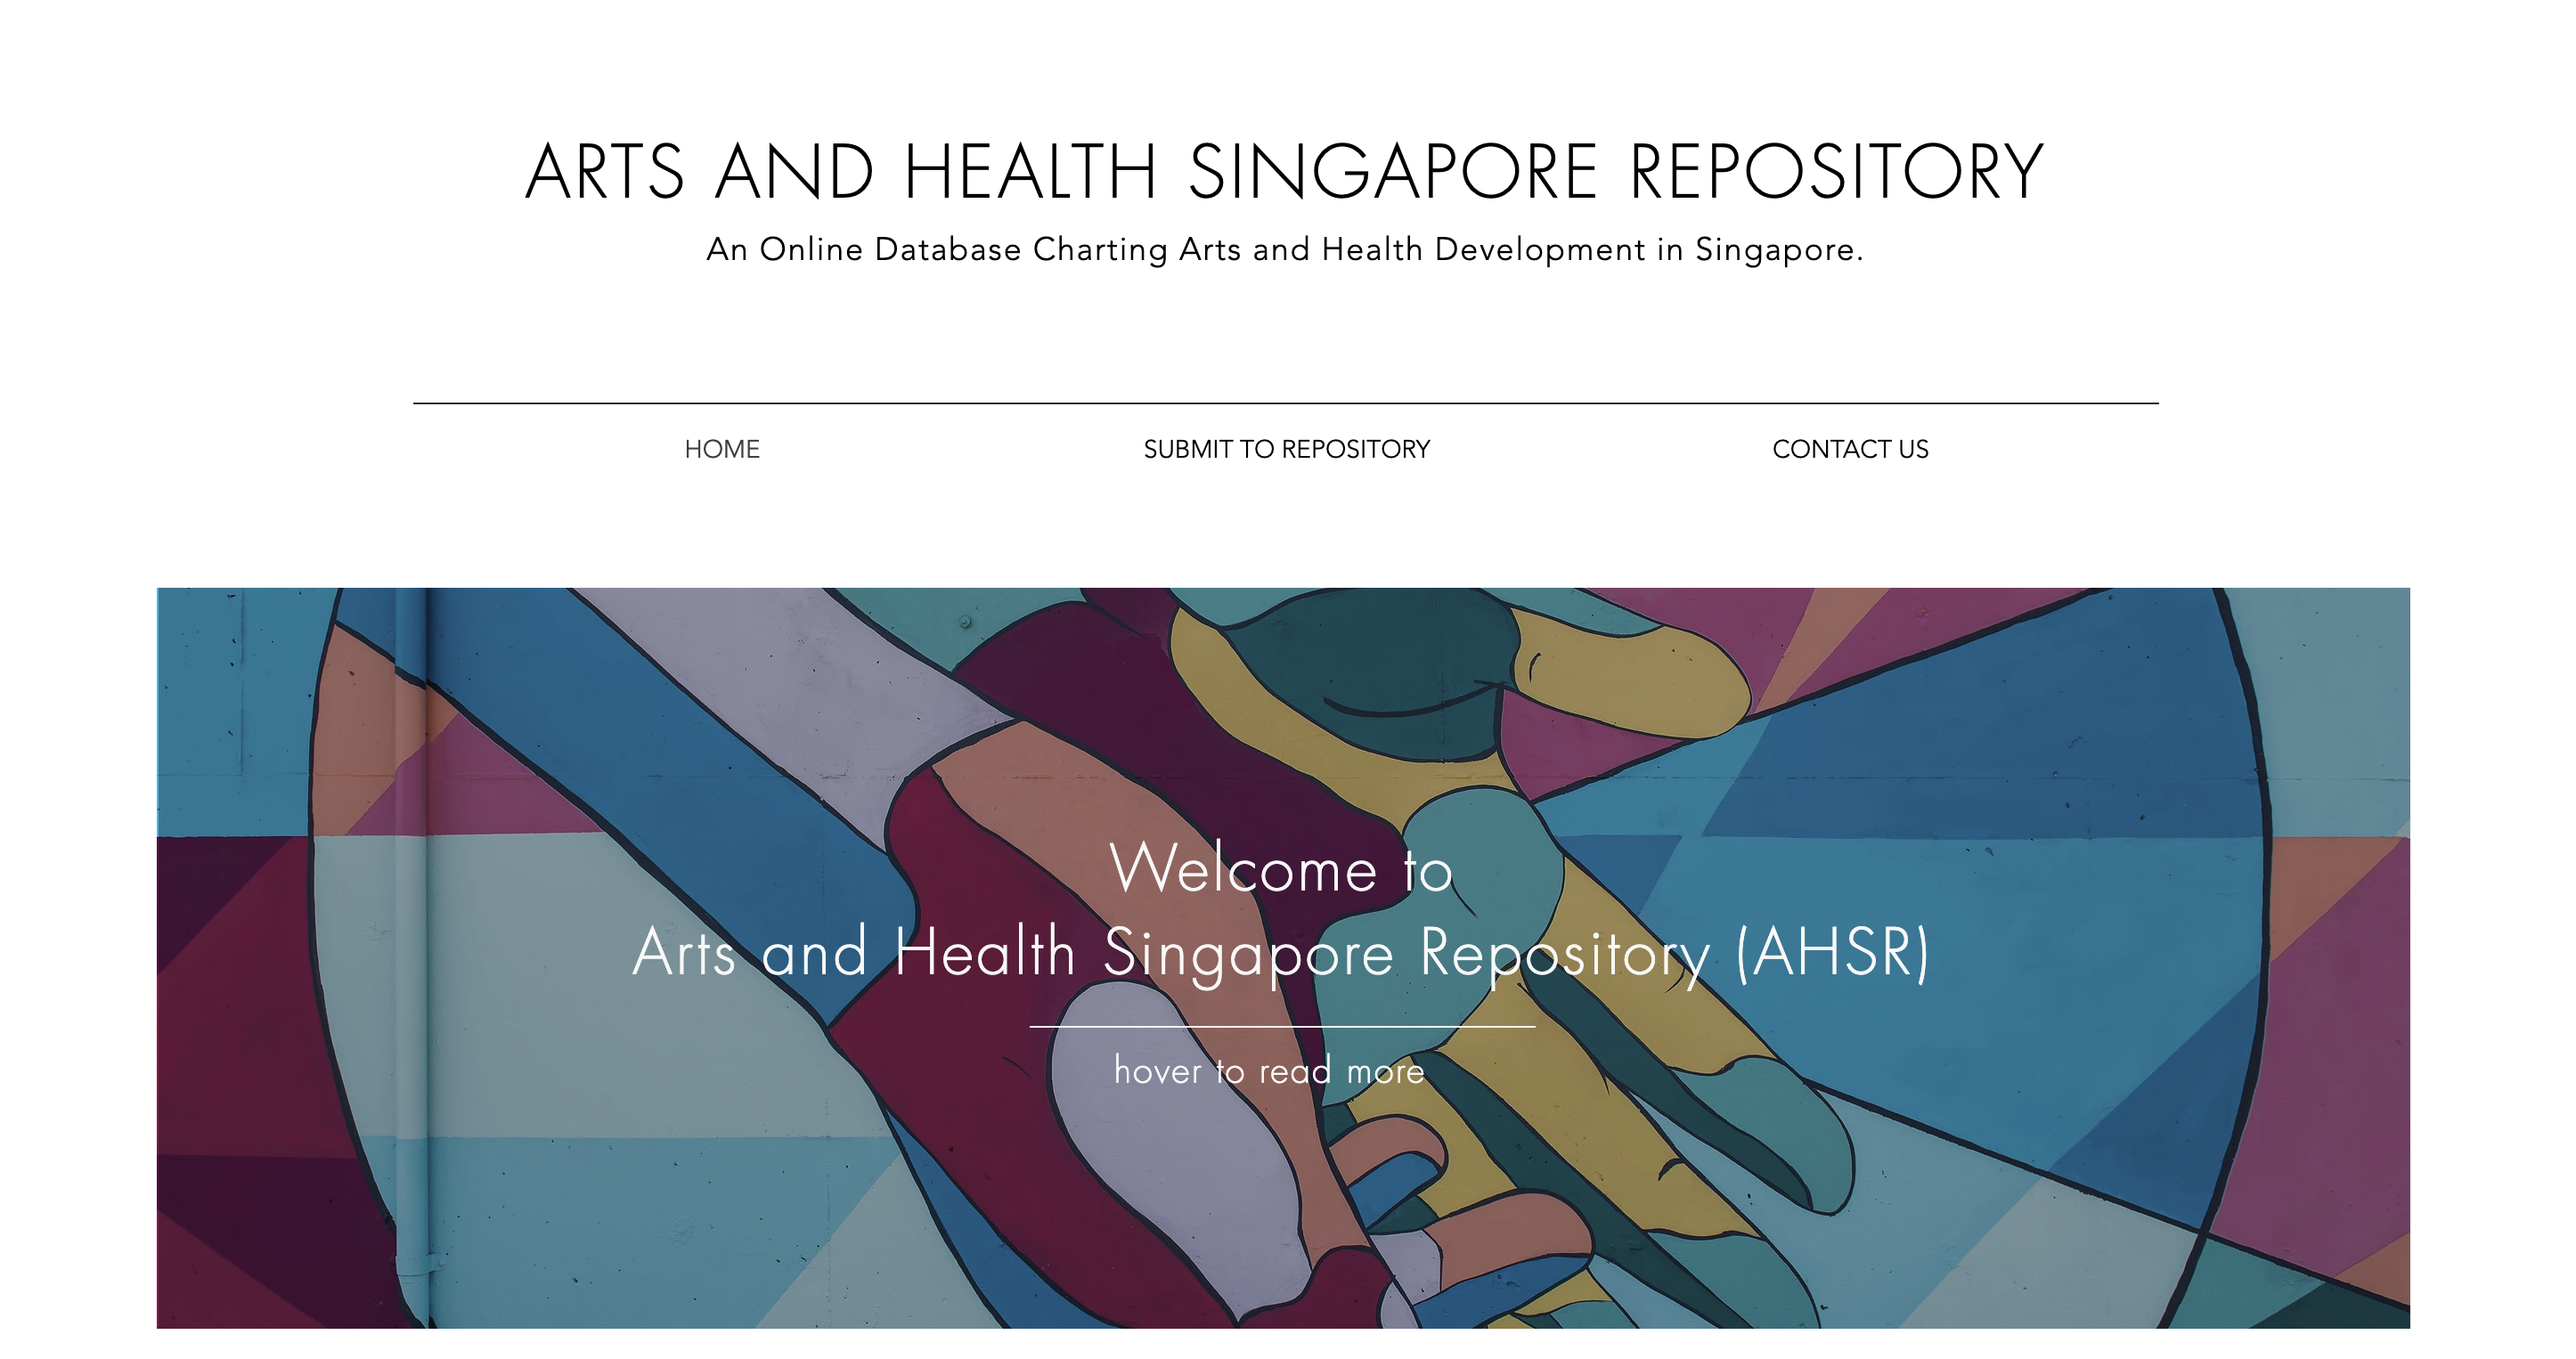 Artshealthrepository.sg is now live!